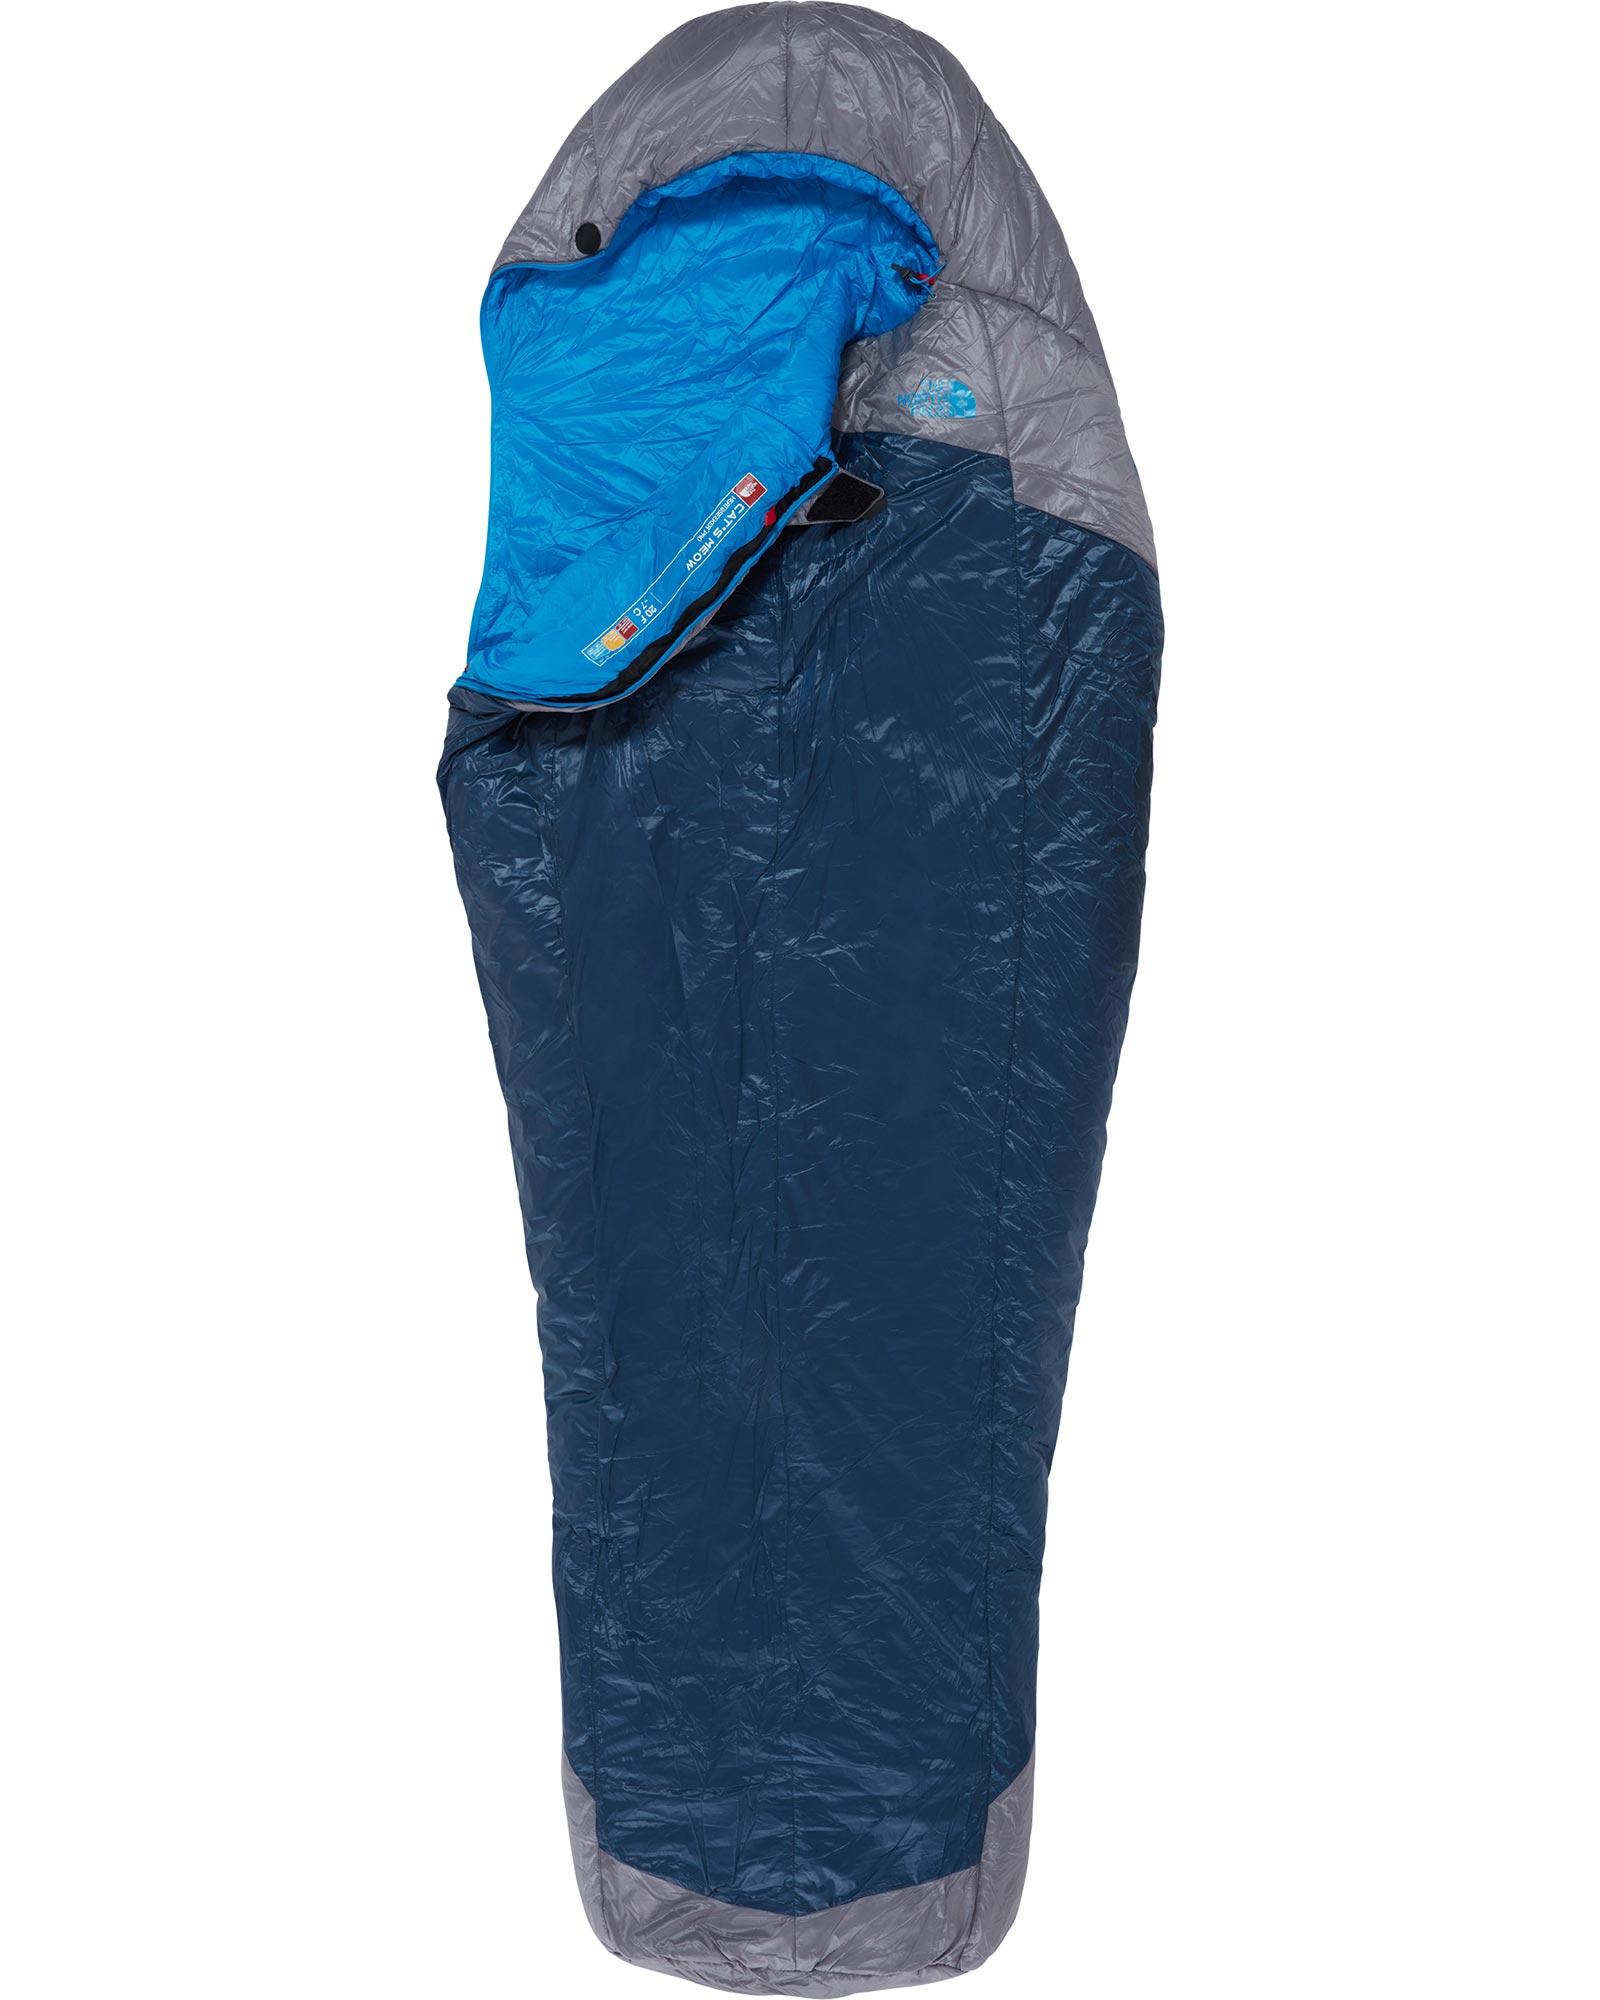 The North Face Cats Meow Guide sleeping bag